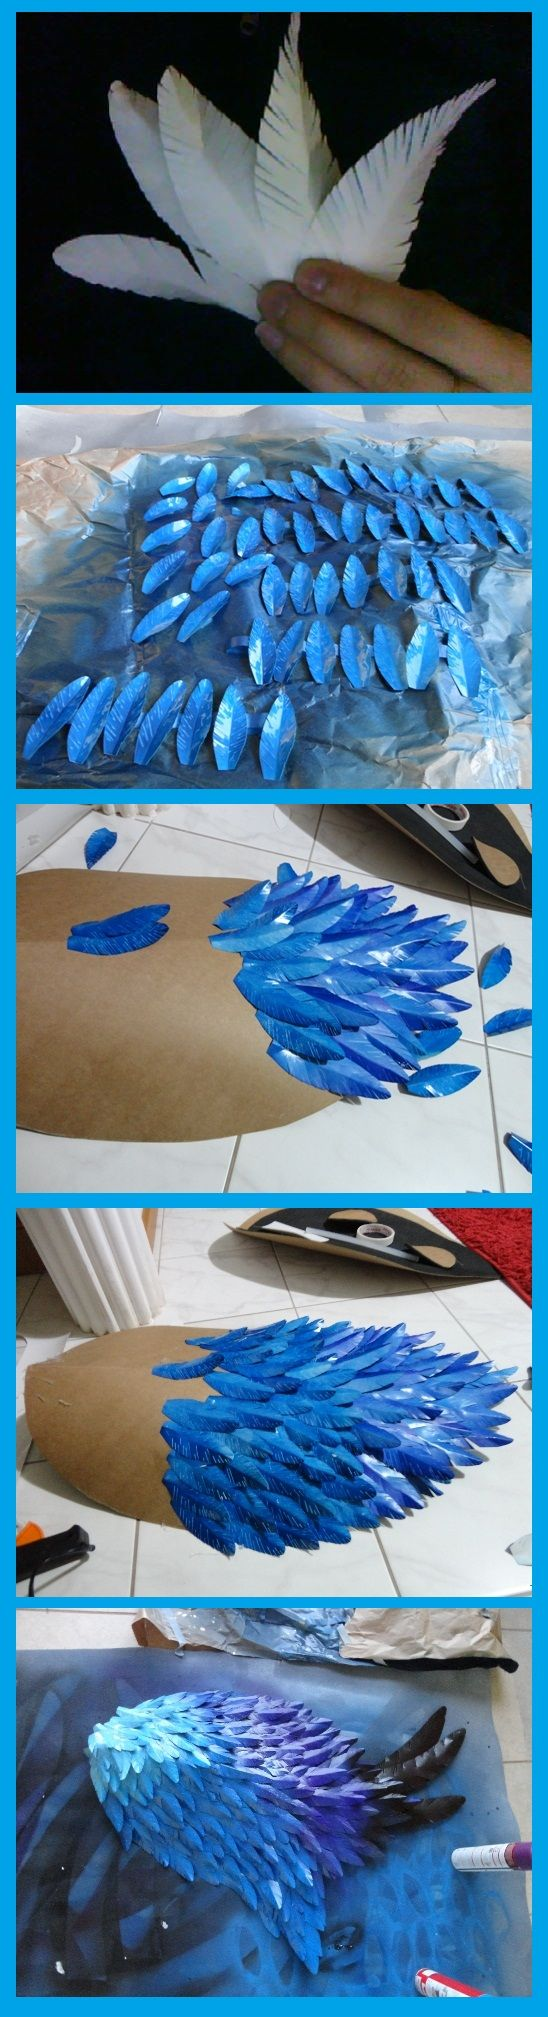 WIP Odin Sphere's Gwendolyn wing by Lockheart18.deviantart.com on @deviantART